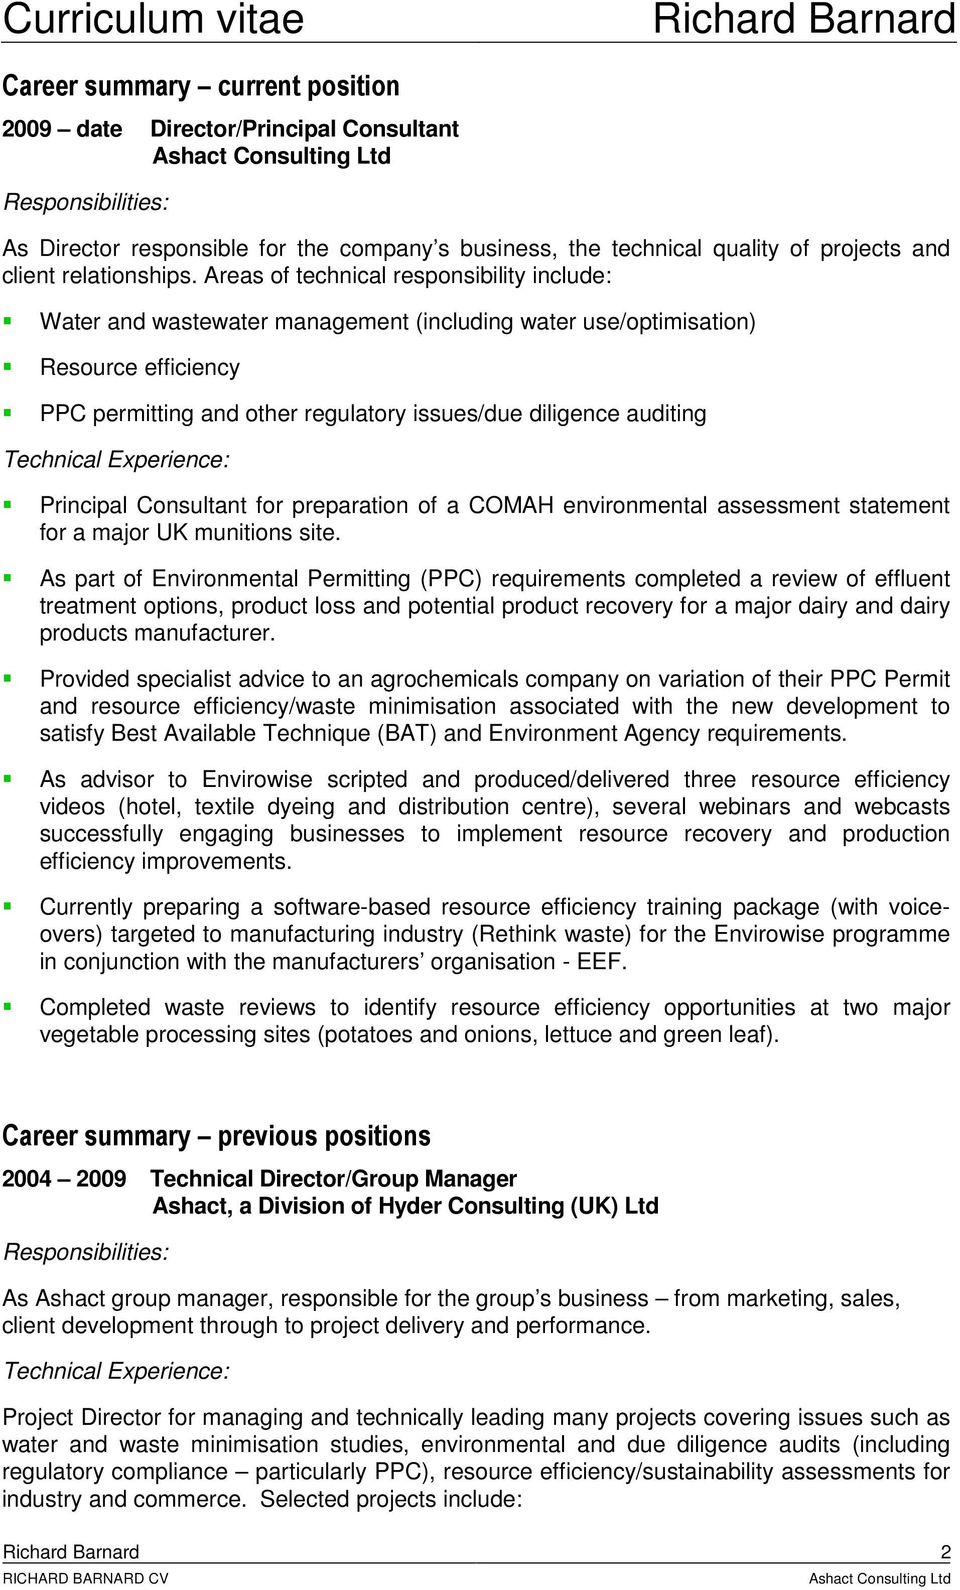 Principal Consultant for preparation of a COMAH environmental assessment statement for a major UK munitions site.